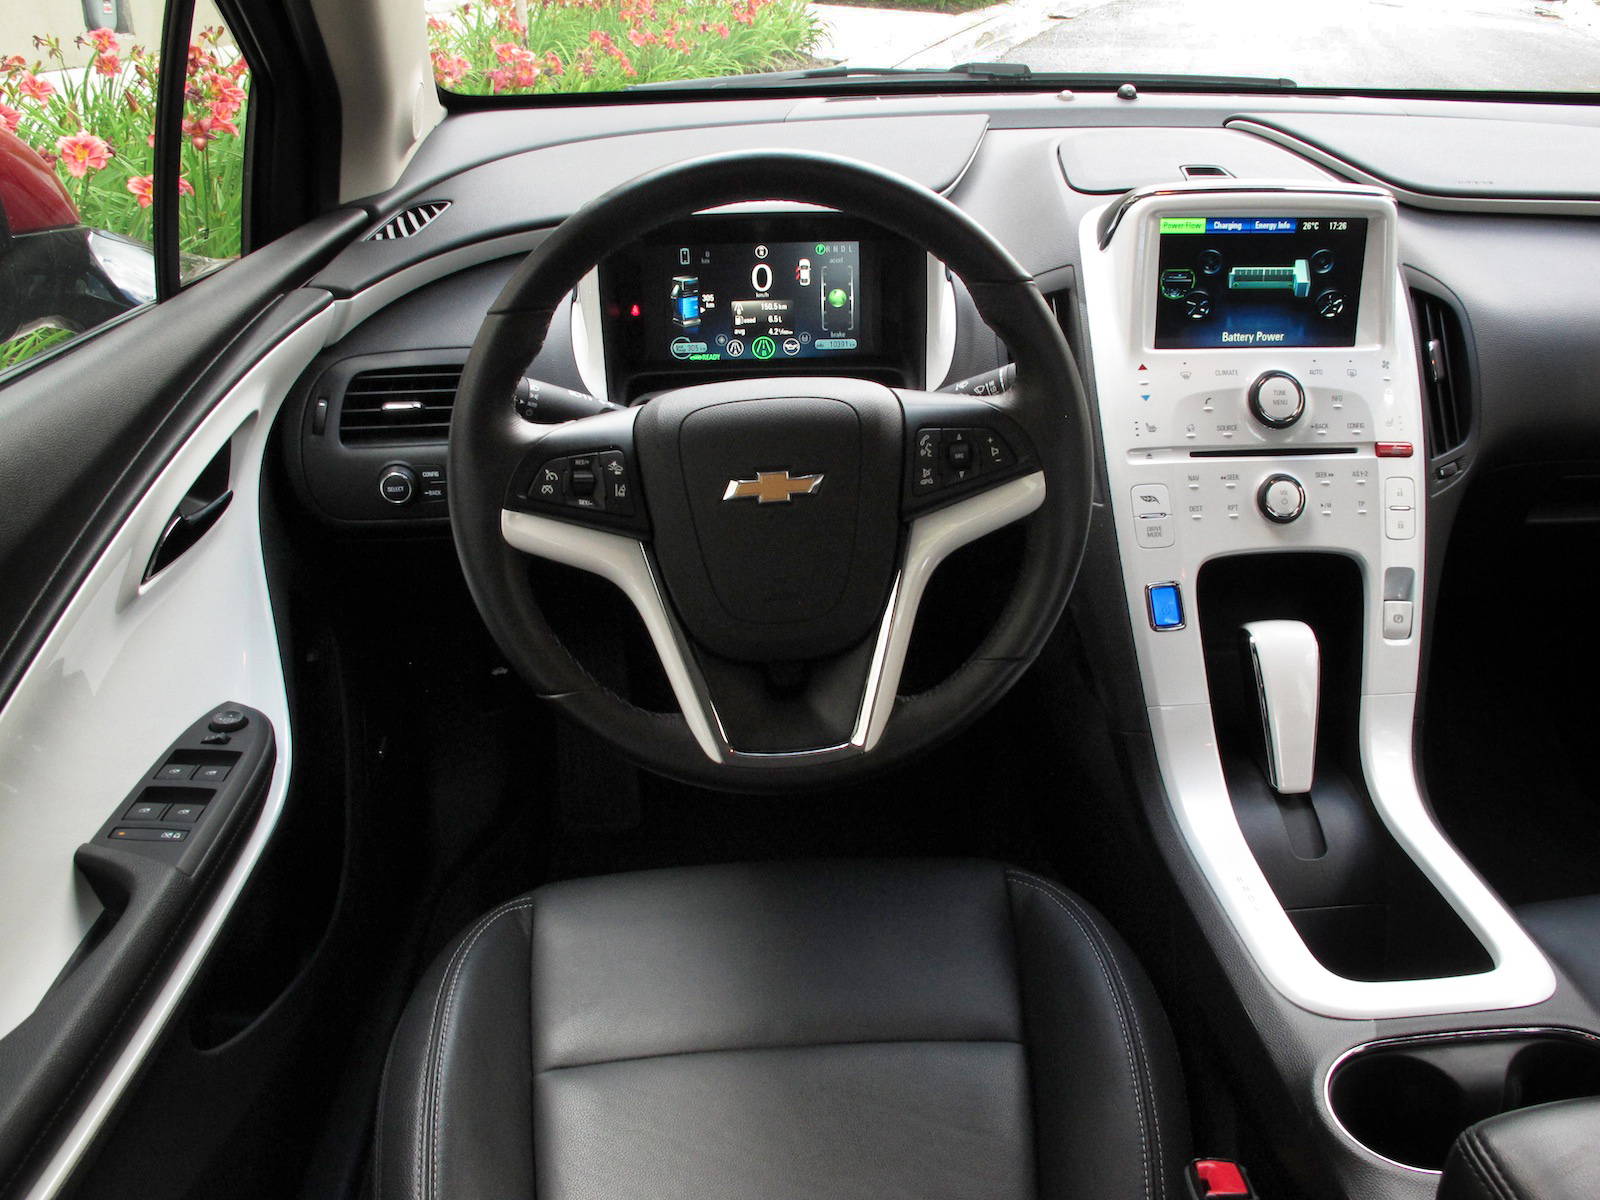 2014 雪佛蘭 Chevrolet Volt Review Cars Photos Test Drives